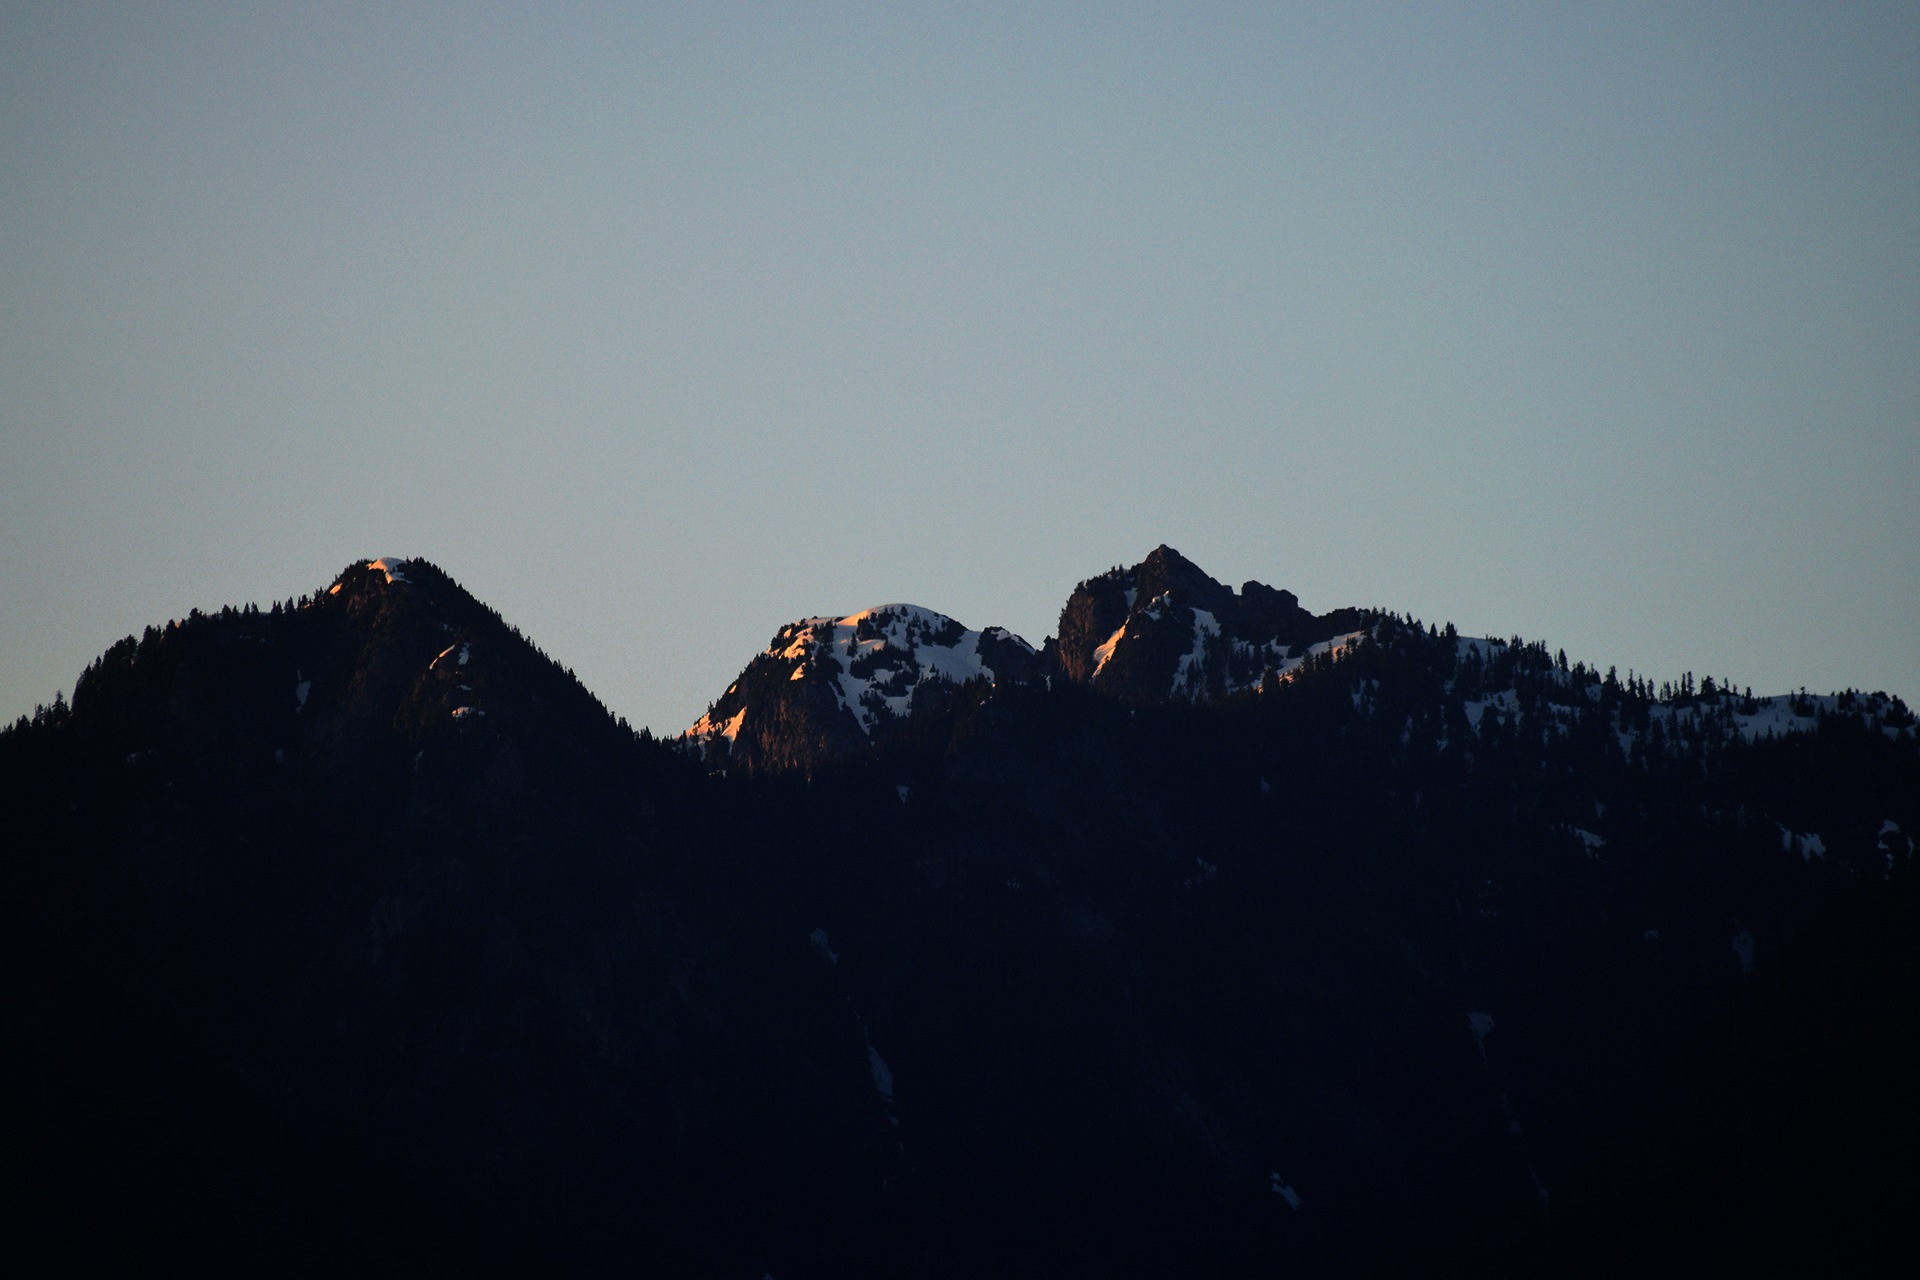 North Vancouver mountain, BC Canada by #gregozphotos